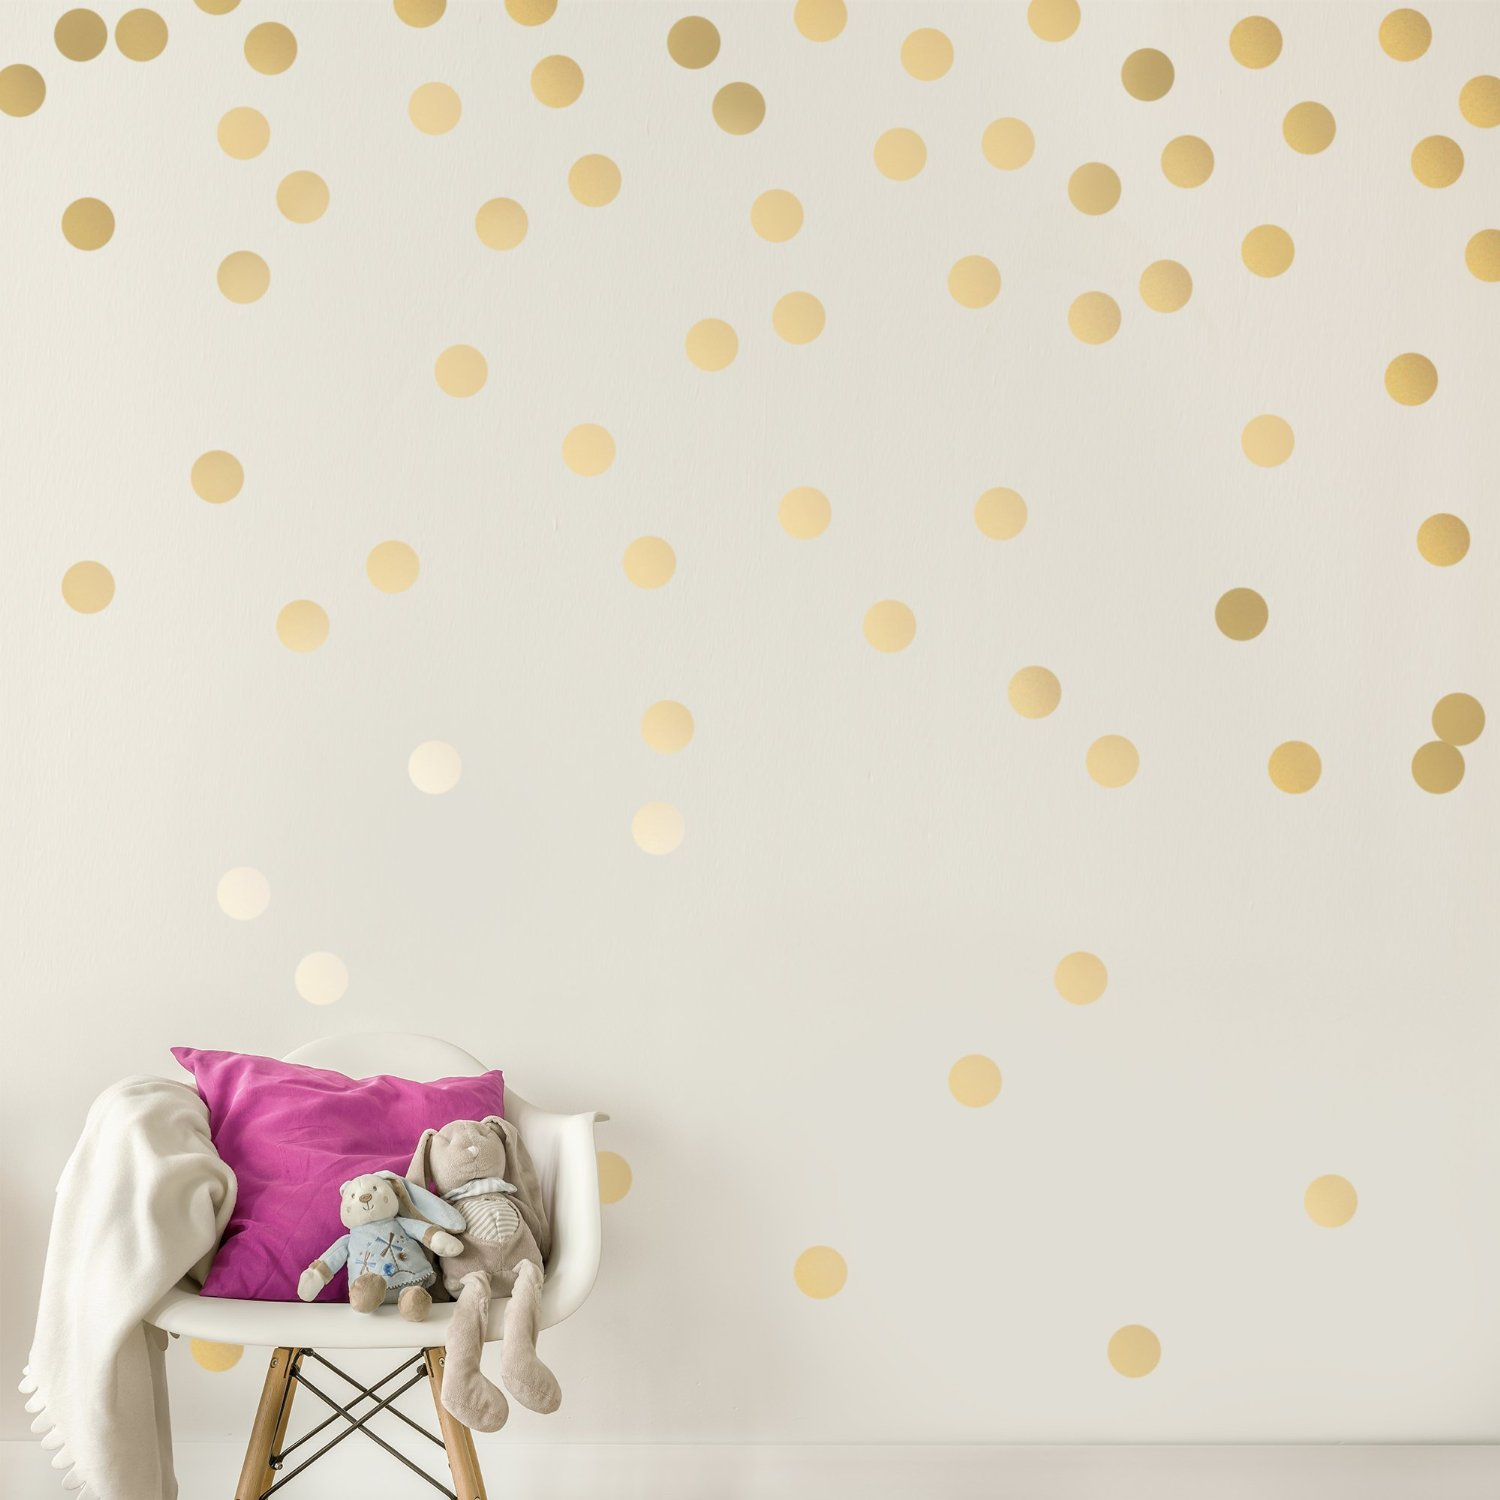 Marvelous C053 Gold Wall Decal Dots Easy Peel Stick Round Circle Art Glitter Sayings  Sticker Large Paper Sheet Set For Nursery Room In Wall Stickers From Home  ...